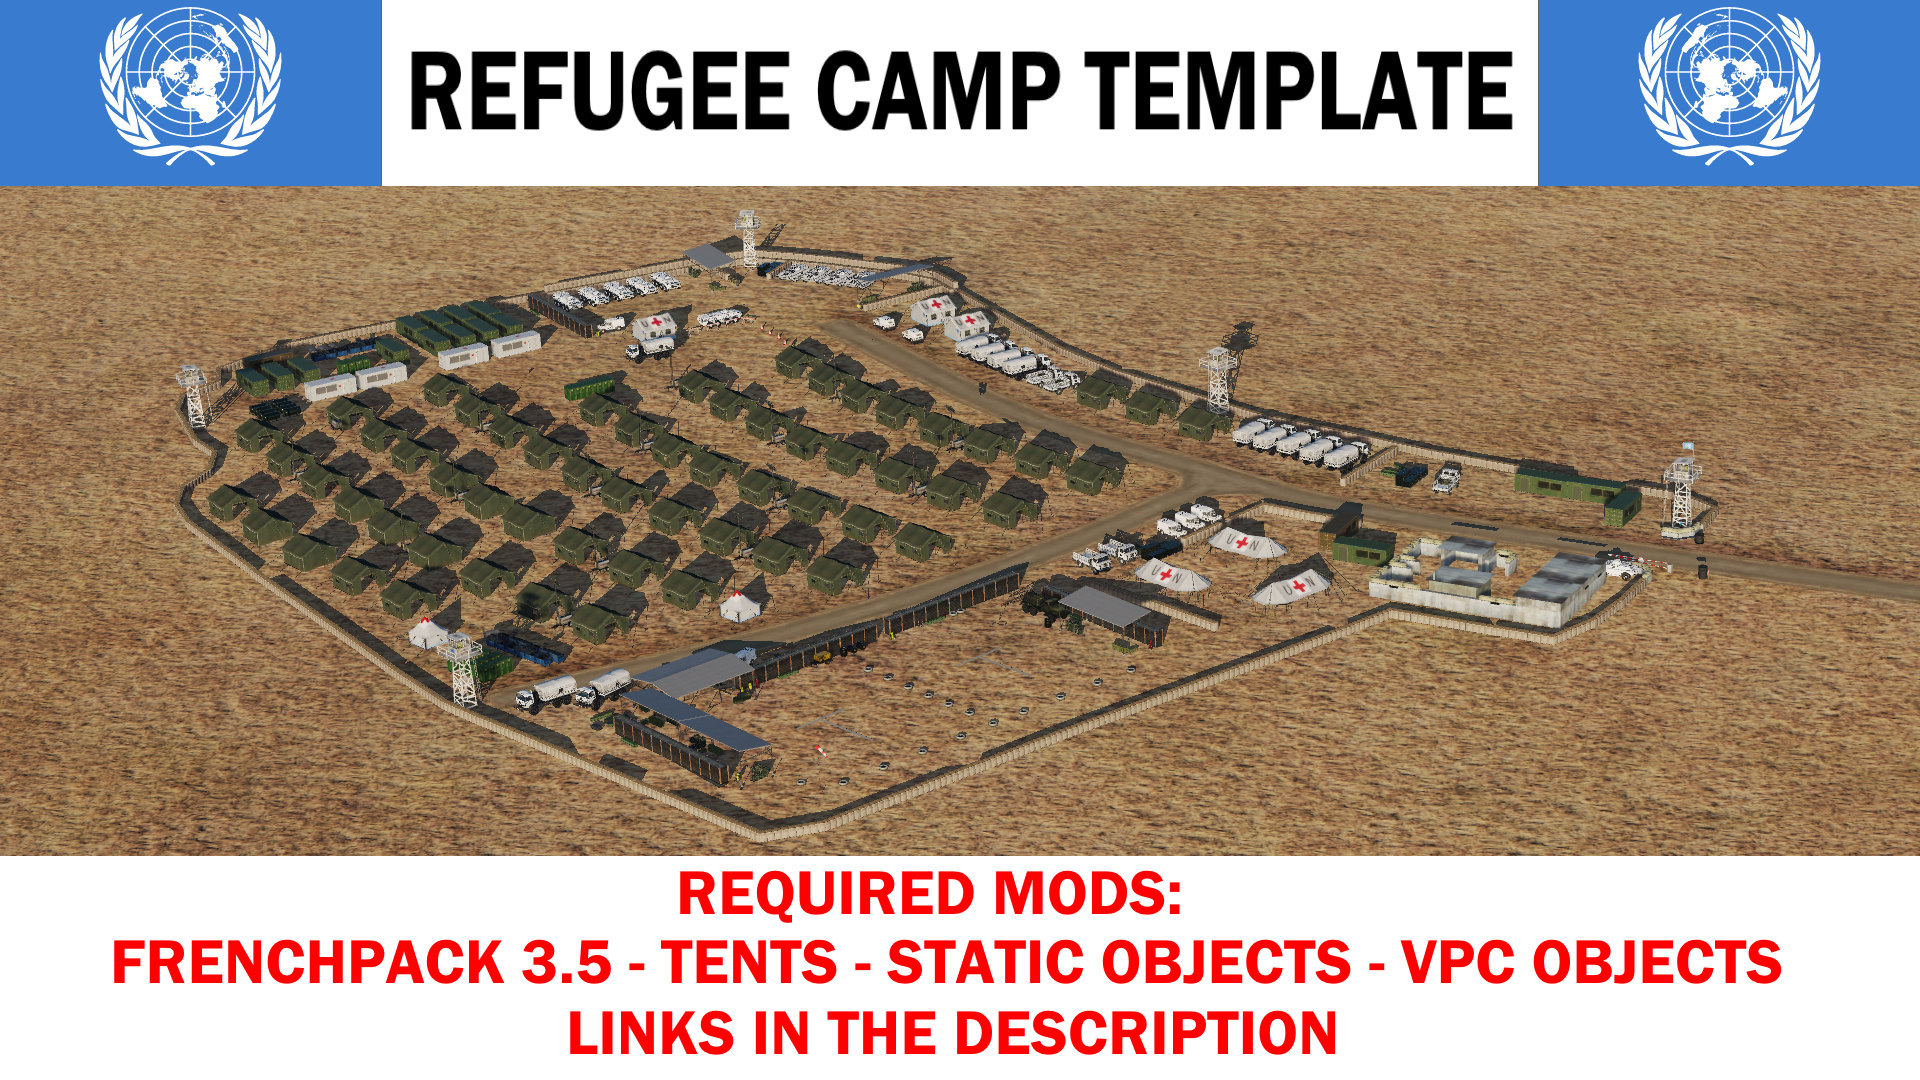 United Nations Refugee Camp Template (SoH map)